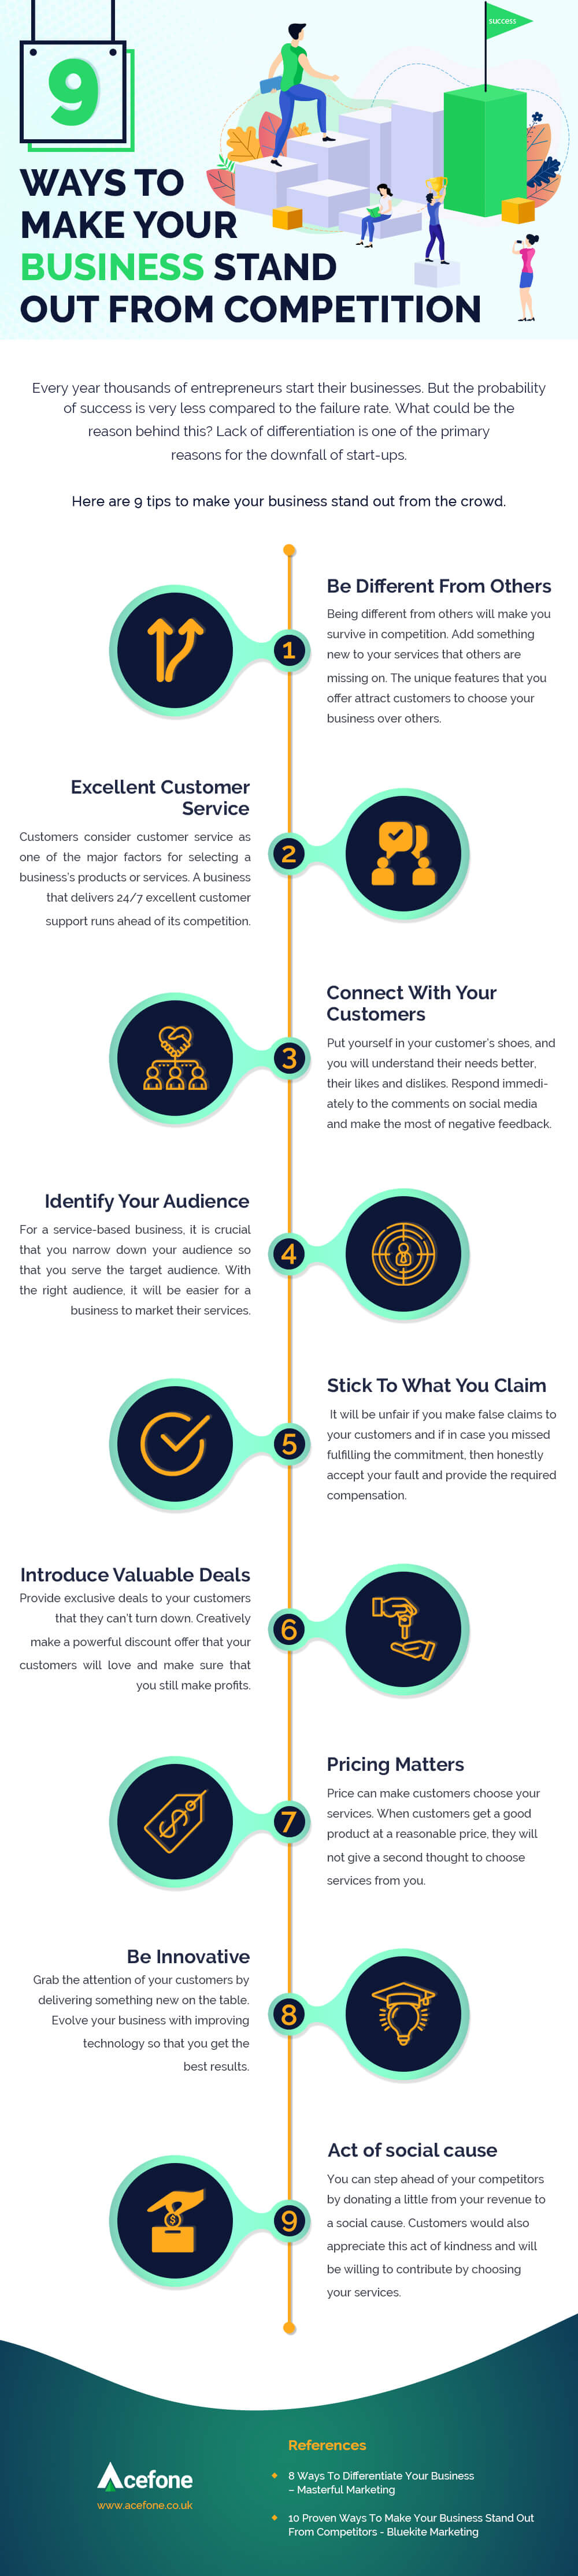 9 Ways to make Your Business Stand Out From Competition - Infographic